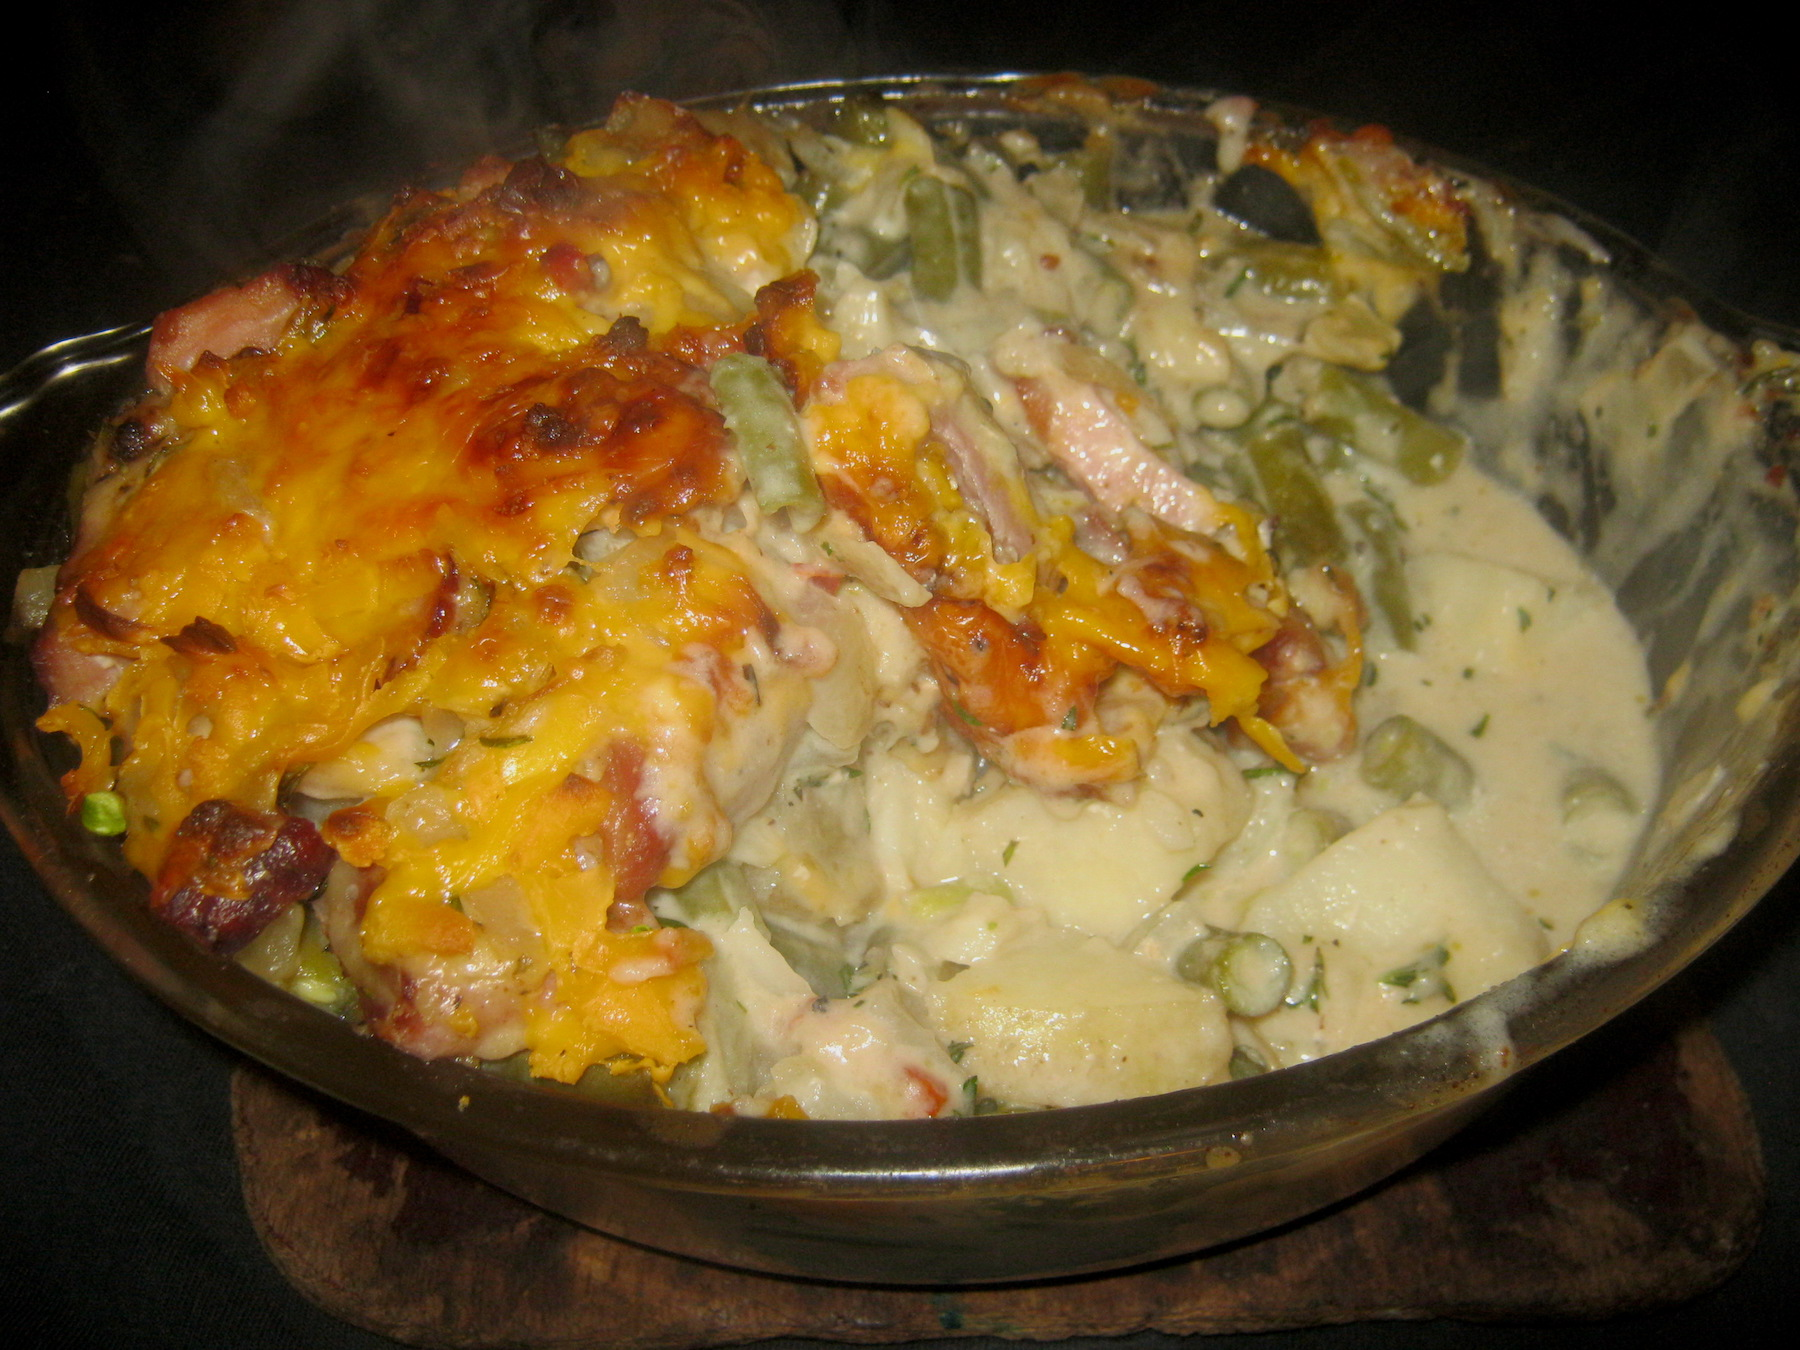 Green Bean and Smoked Gammon Steak Casserole